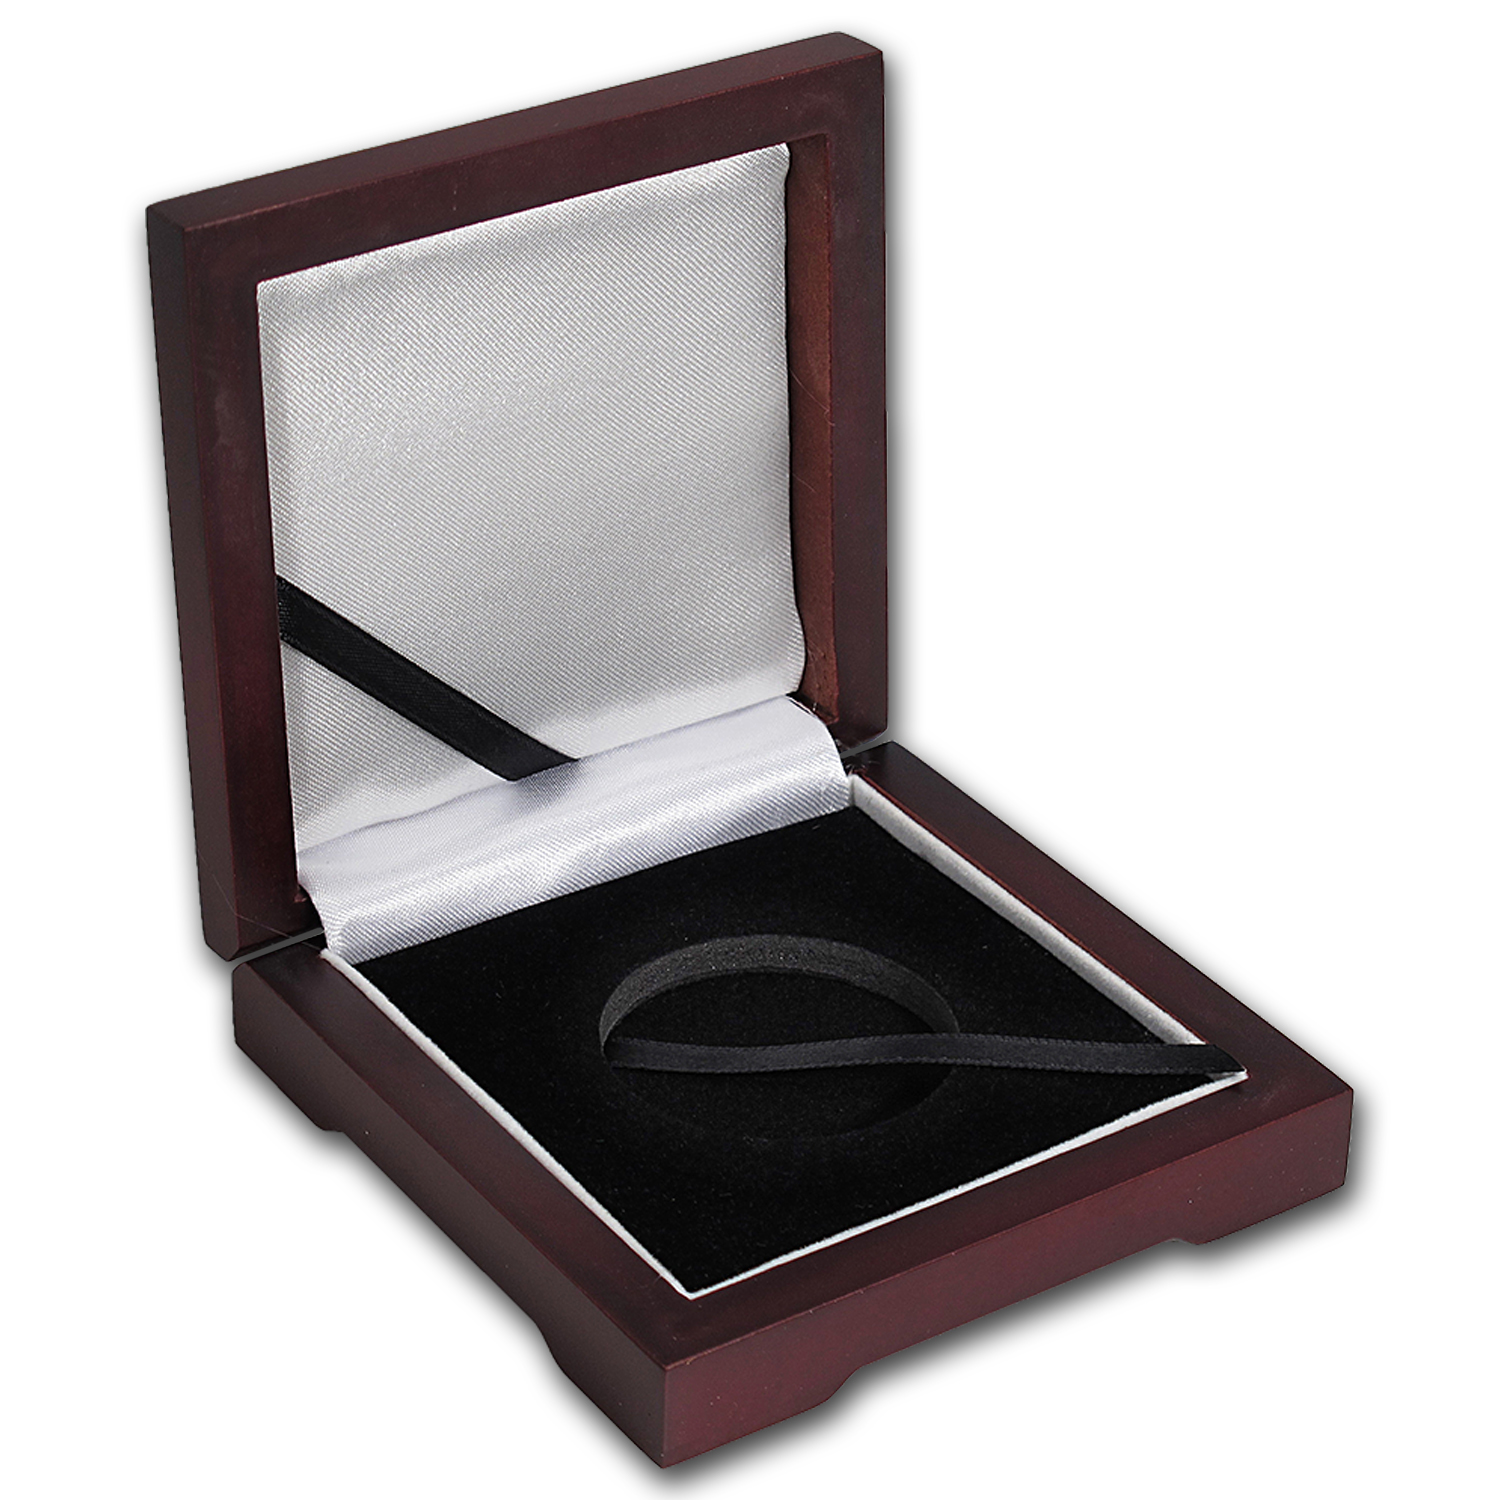 Single Coin Wood Presentation Box - Fits Up to 40 mm